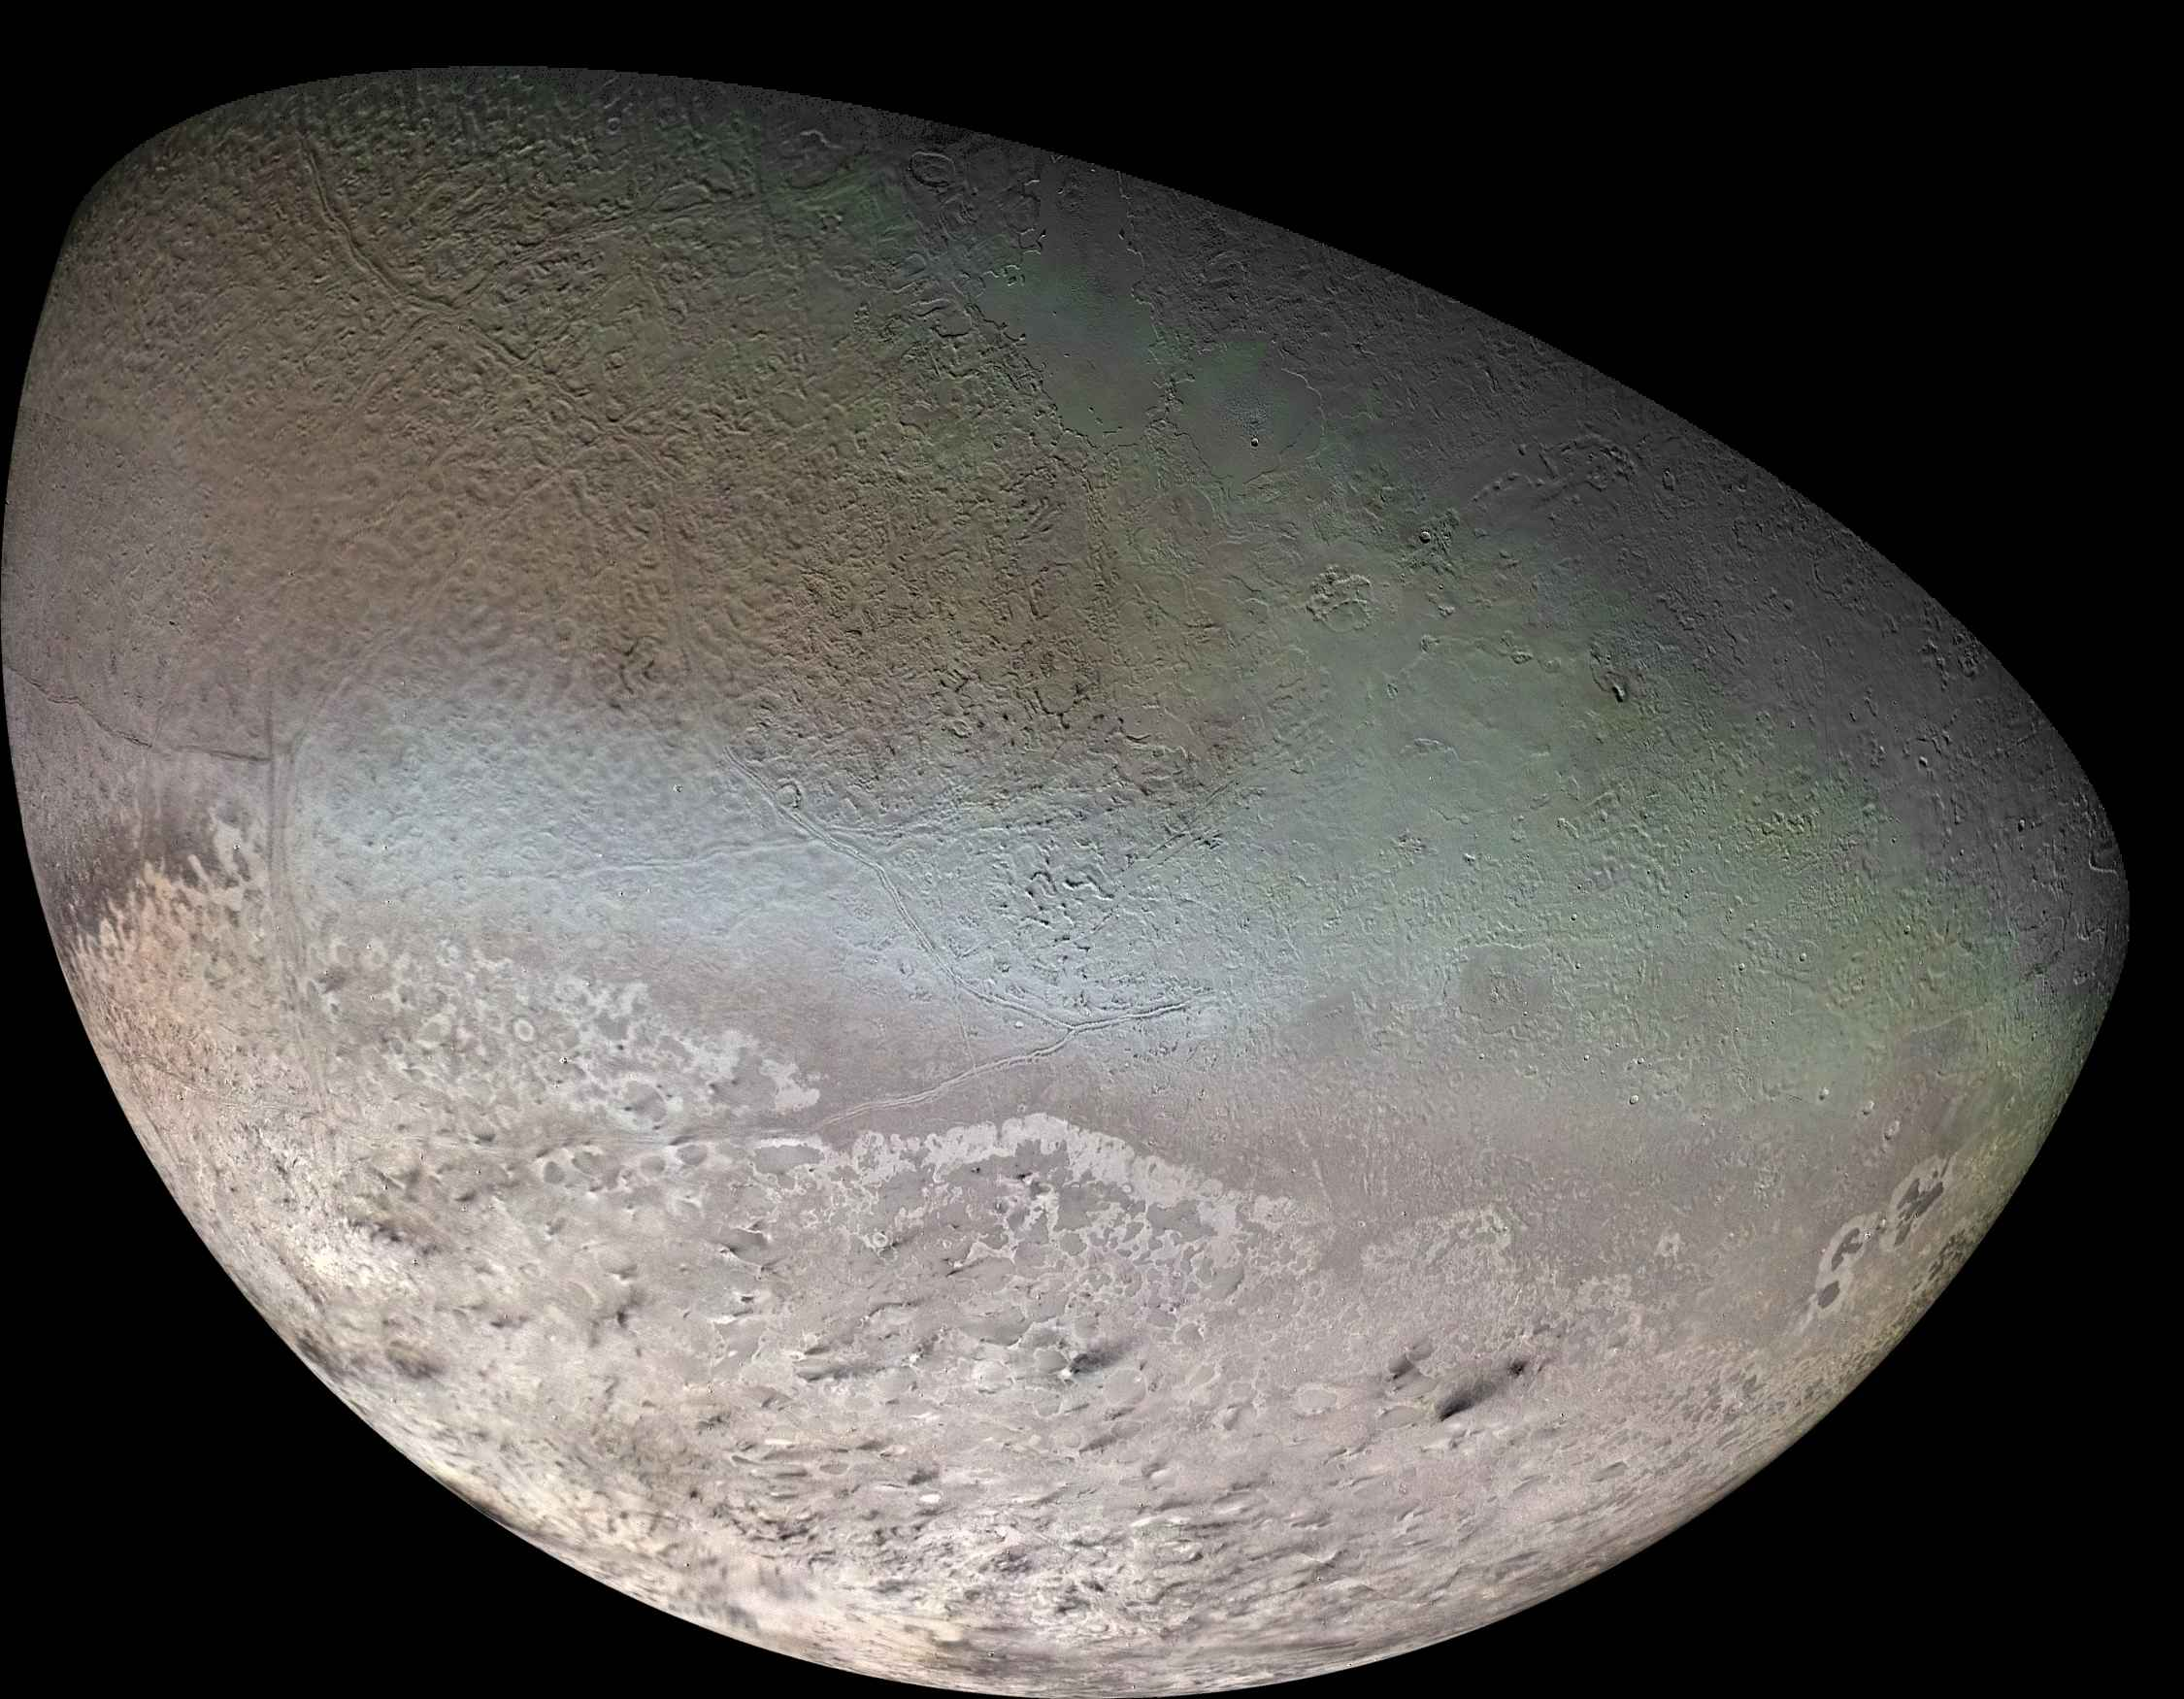 Seasons Discovered on Neptune's Moon Triton « Waxing Apocalyptic